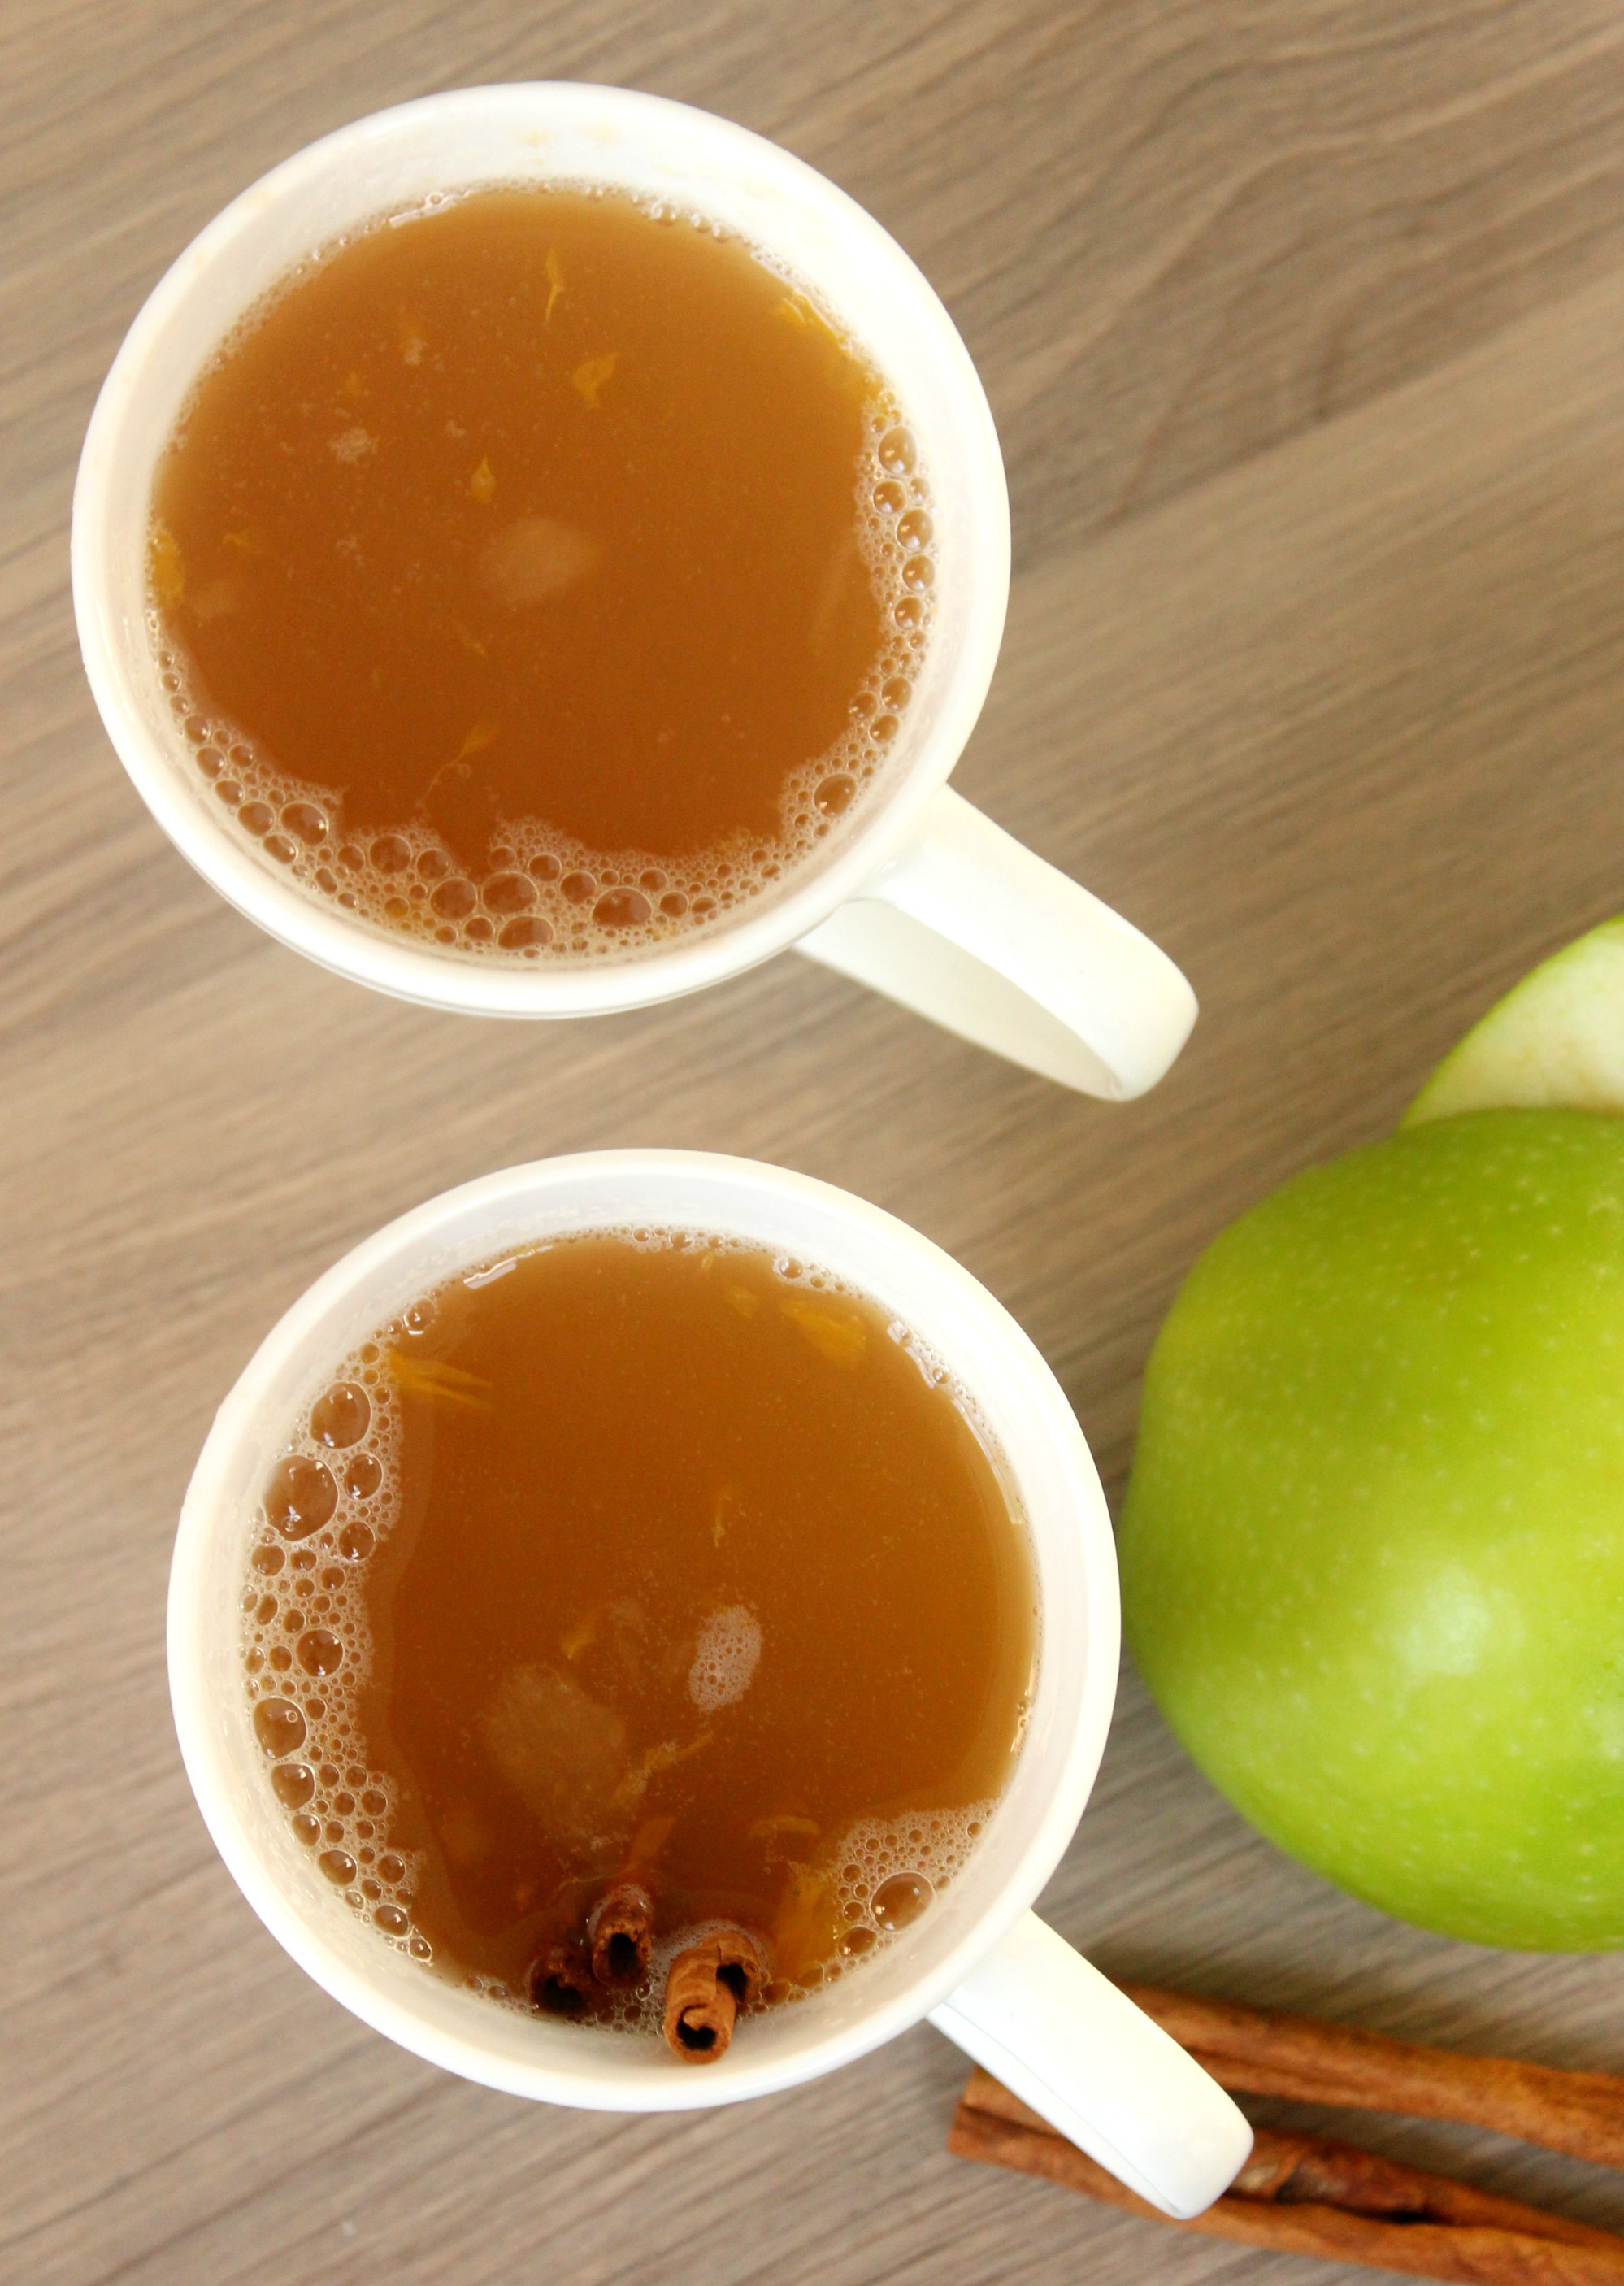 Homemade Slow Cooker Apple Cider Recipe